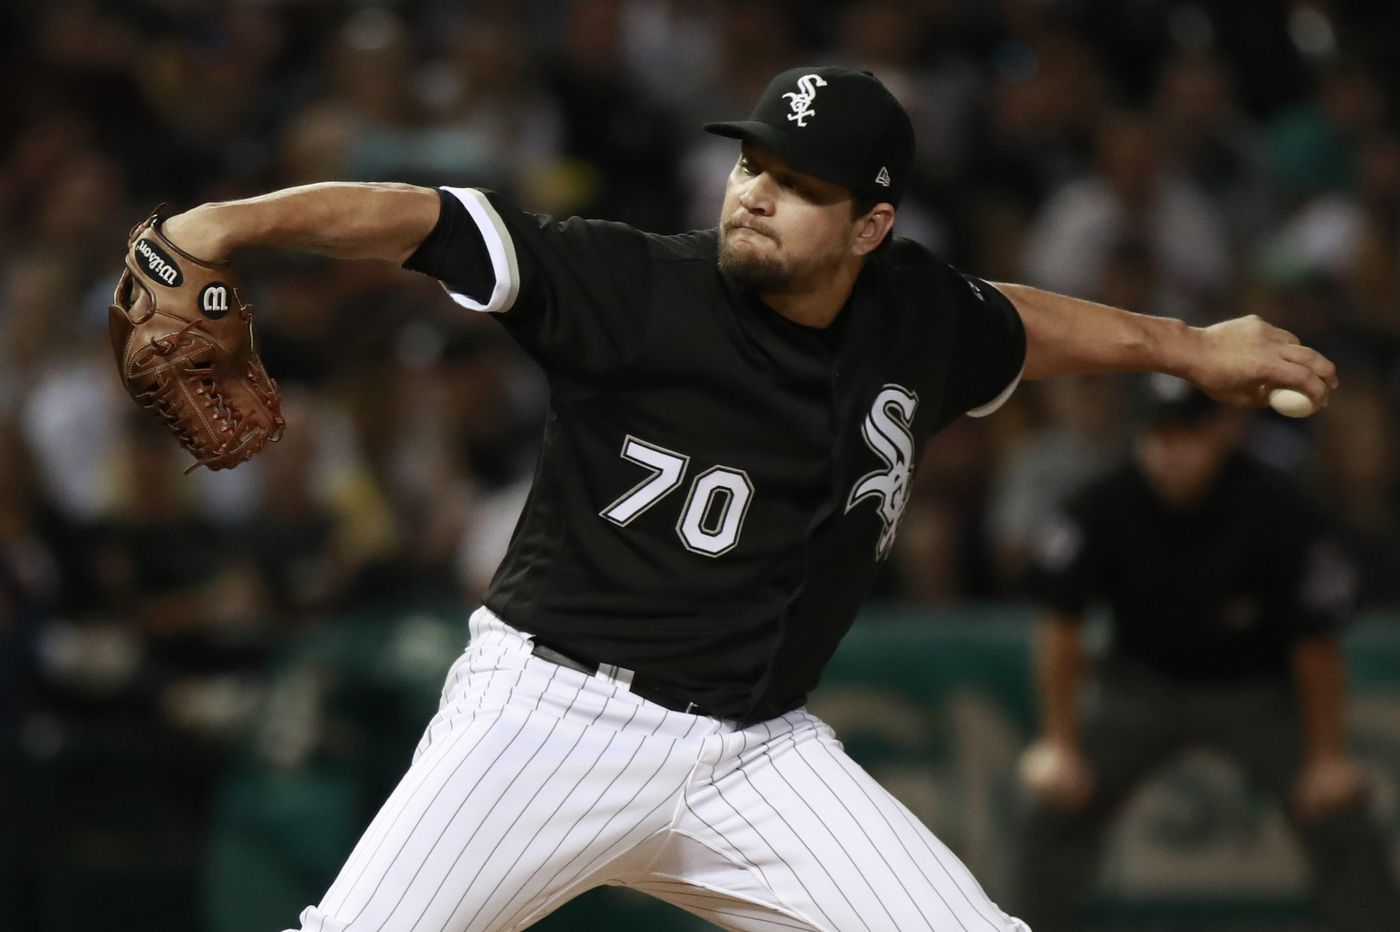 Phillies acquire lefthanded reliever Luis Avilan in trade with White Sox